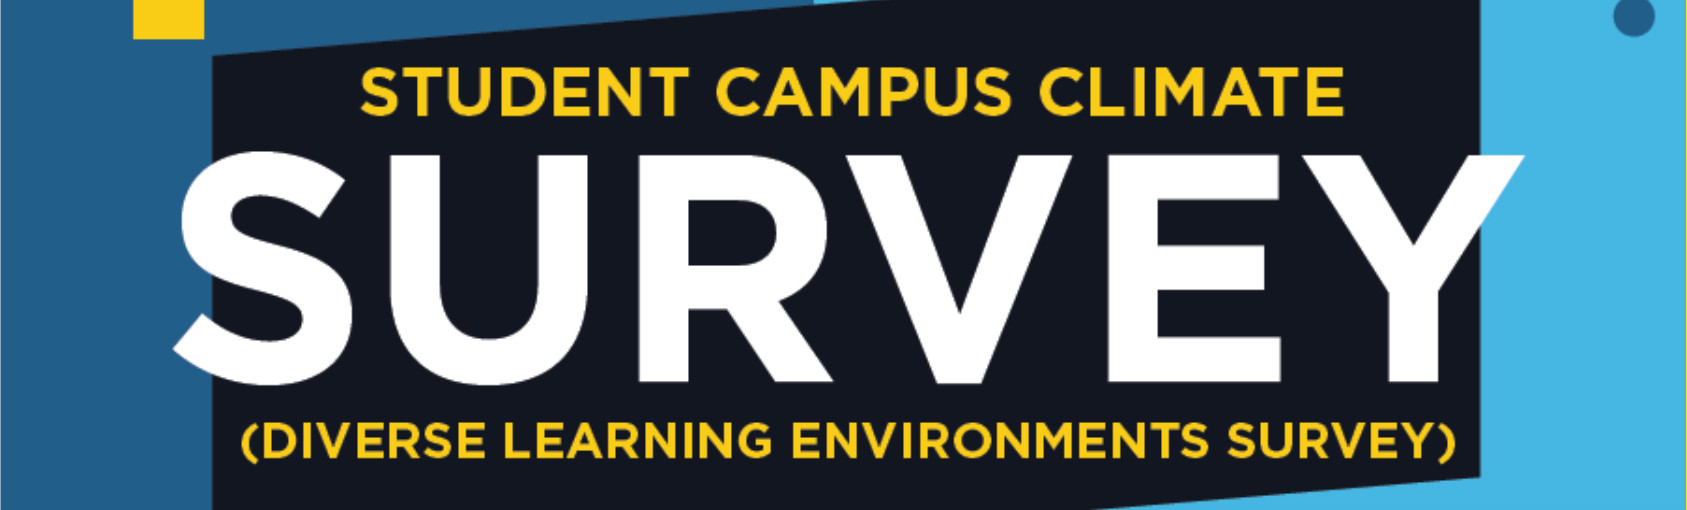 Make Your Voice Heard Through the Campus Climate Survey banner